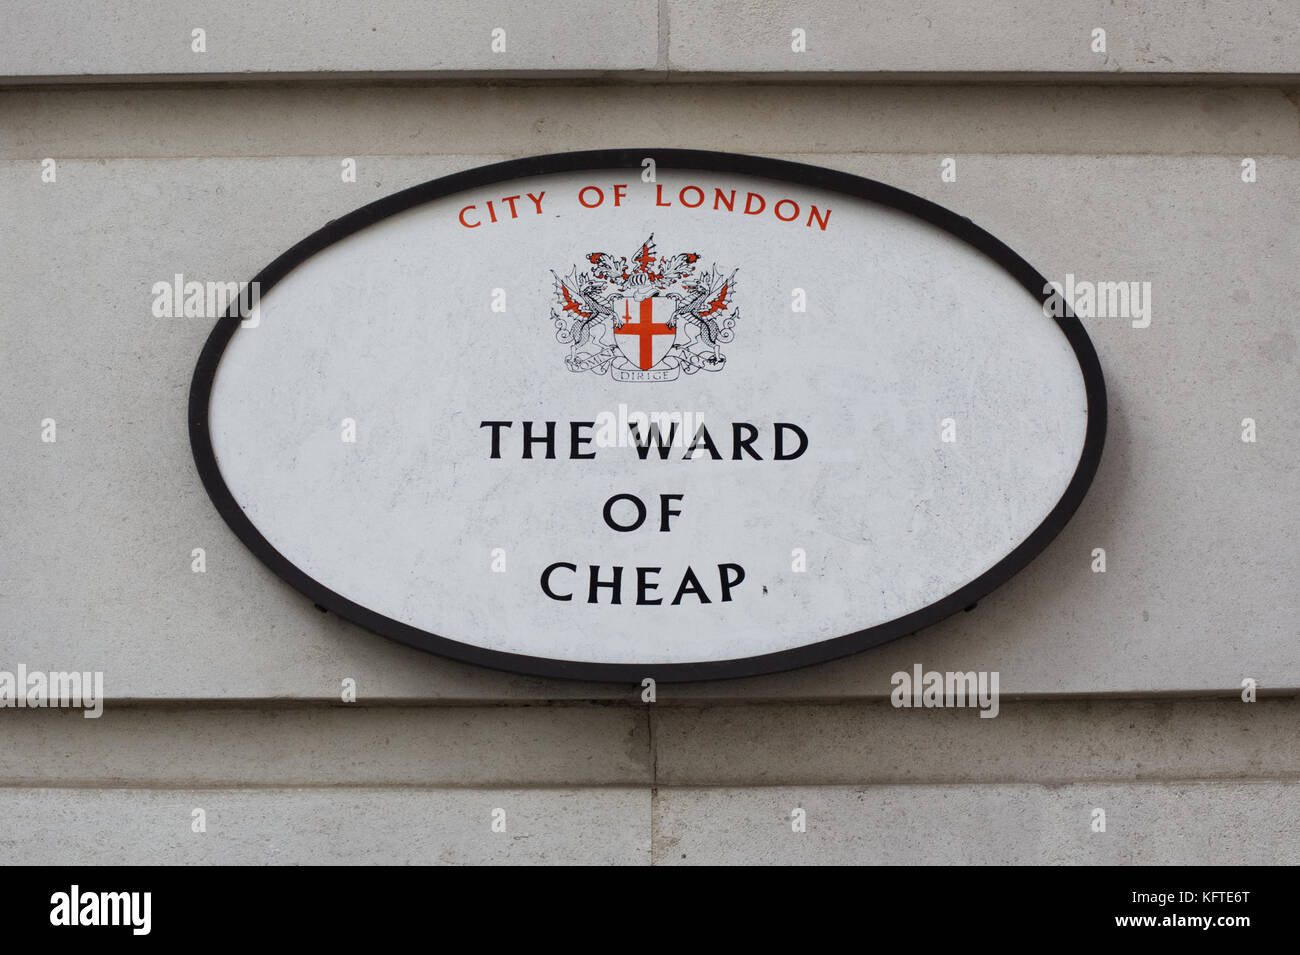 The Ward of Cheap sign in the City of London - Stock Image